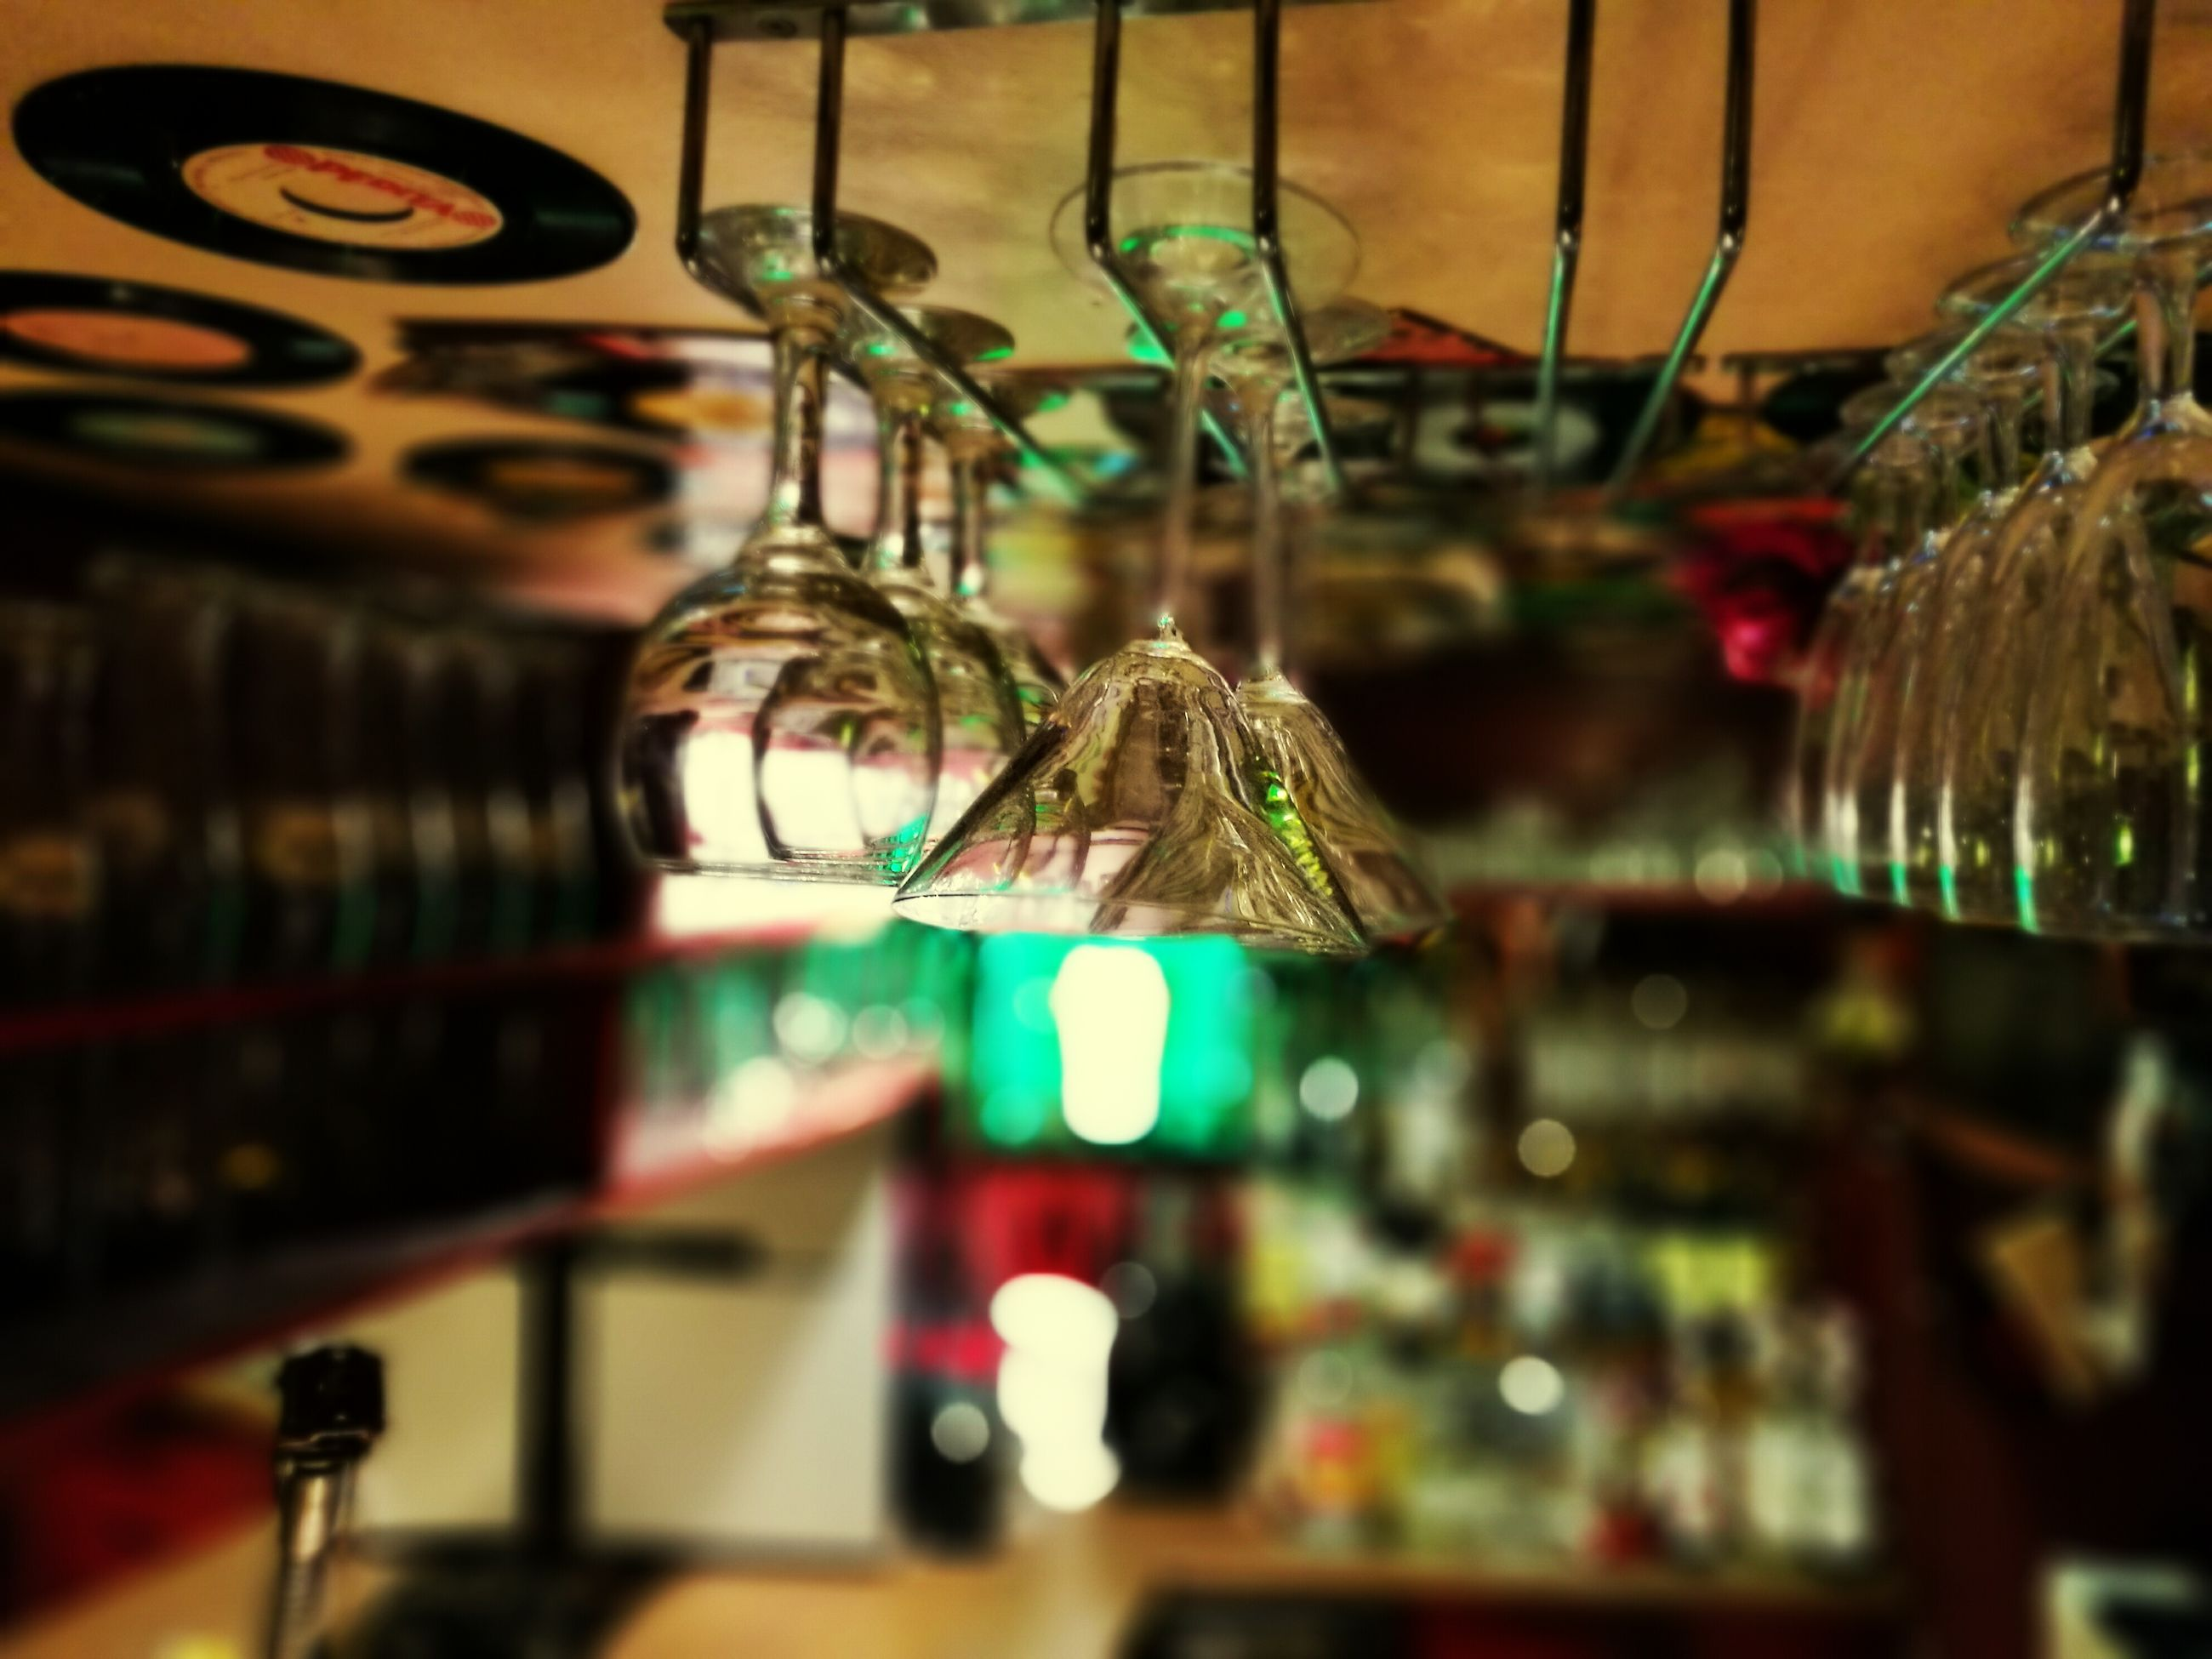 indoors, close-up, selective focus, hanging, decoration, decor, multi colored, illuminated, no people, focus on foreground, full frame, christmas ornament, man made object